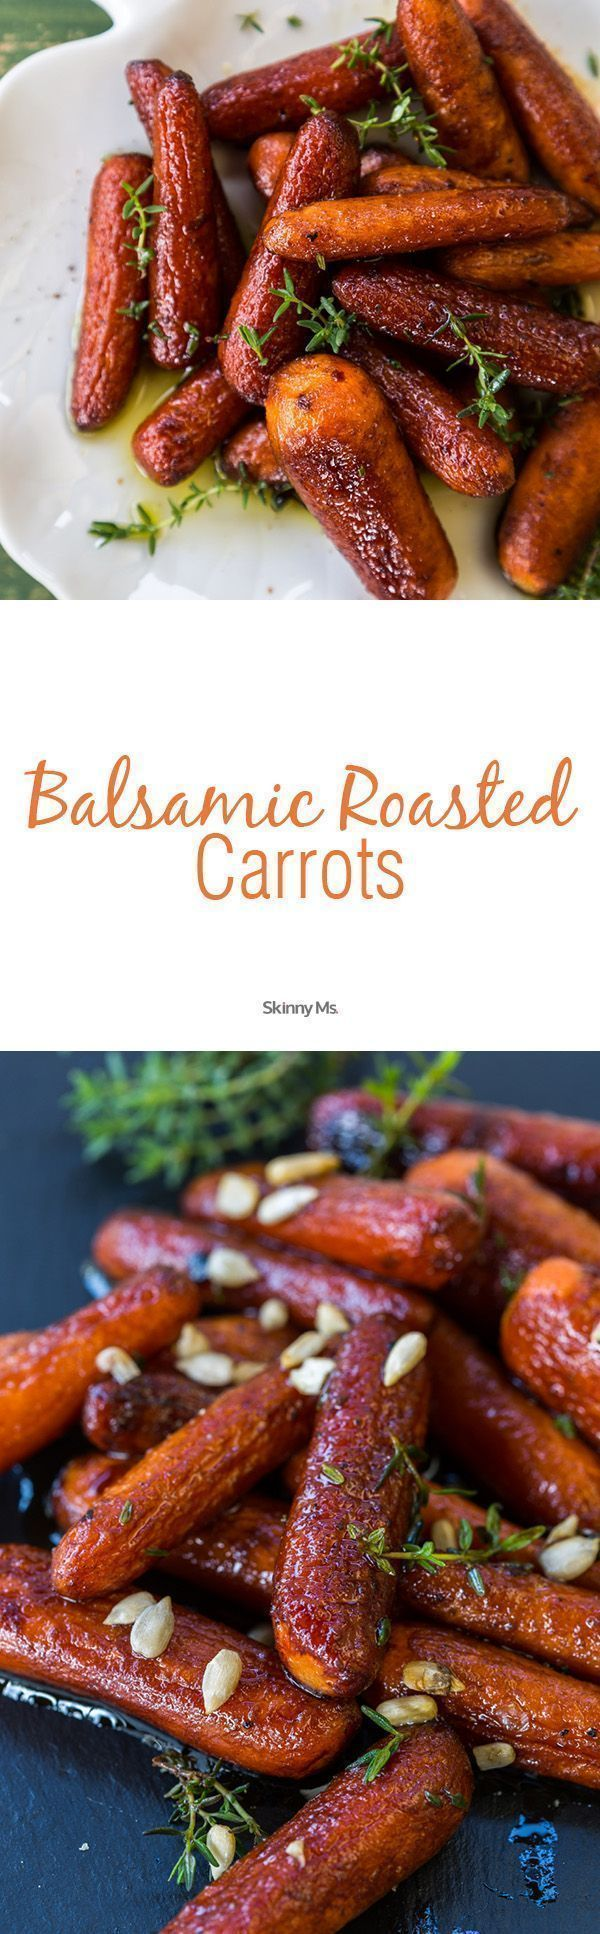 These Balsamic Roasted Carrots are so deliciously rich and the perfect Thanksgiving side dish.